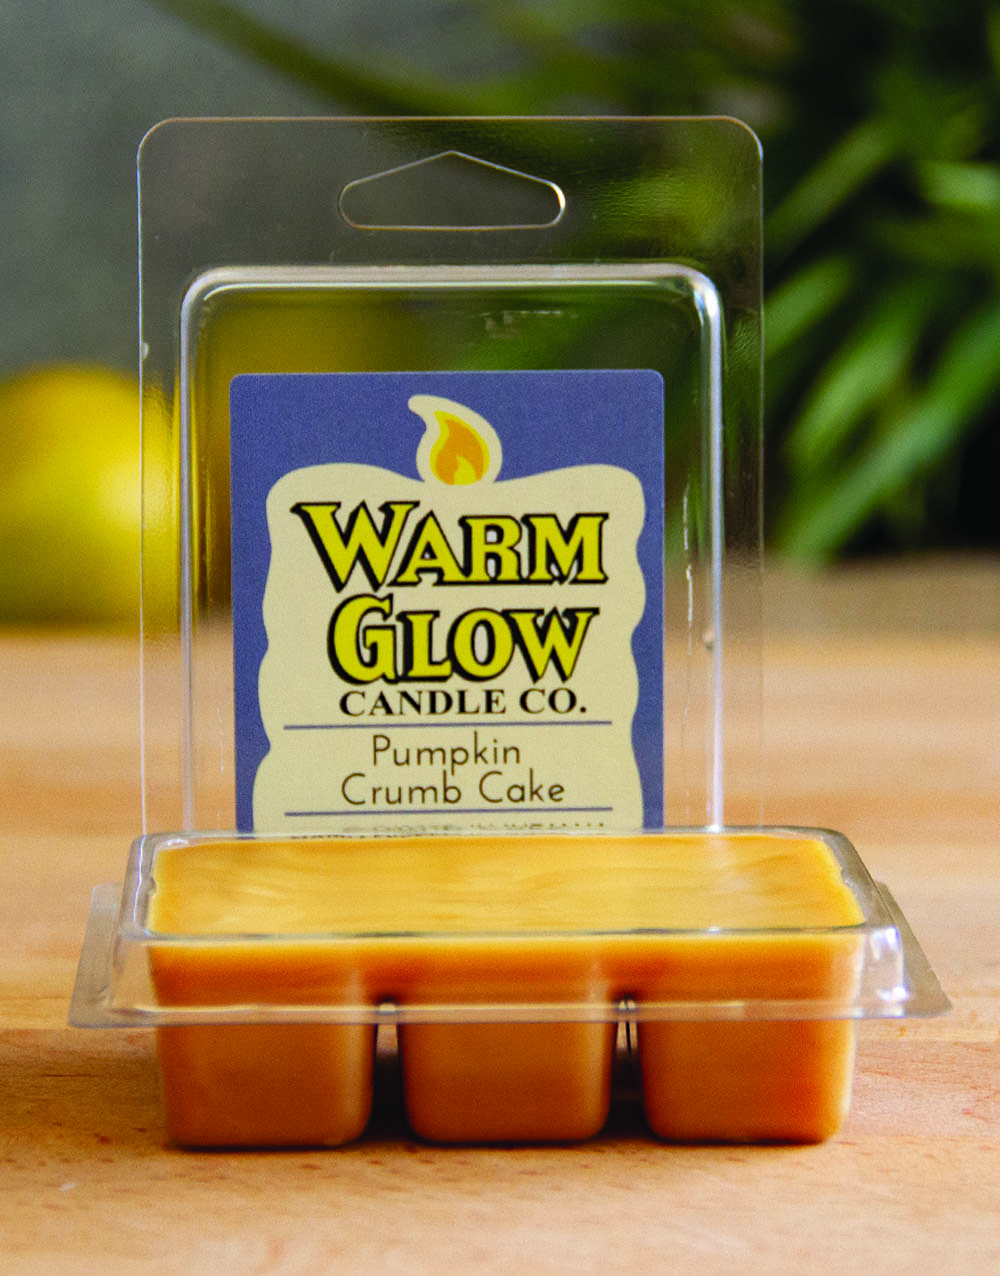 Pumpkin Crumb-Cake wax melts